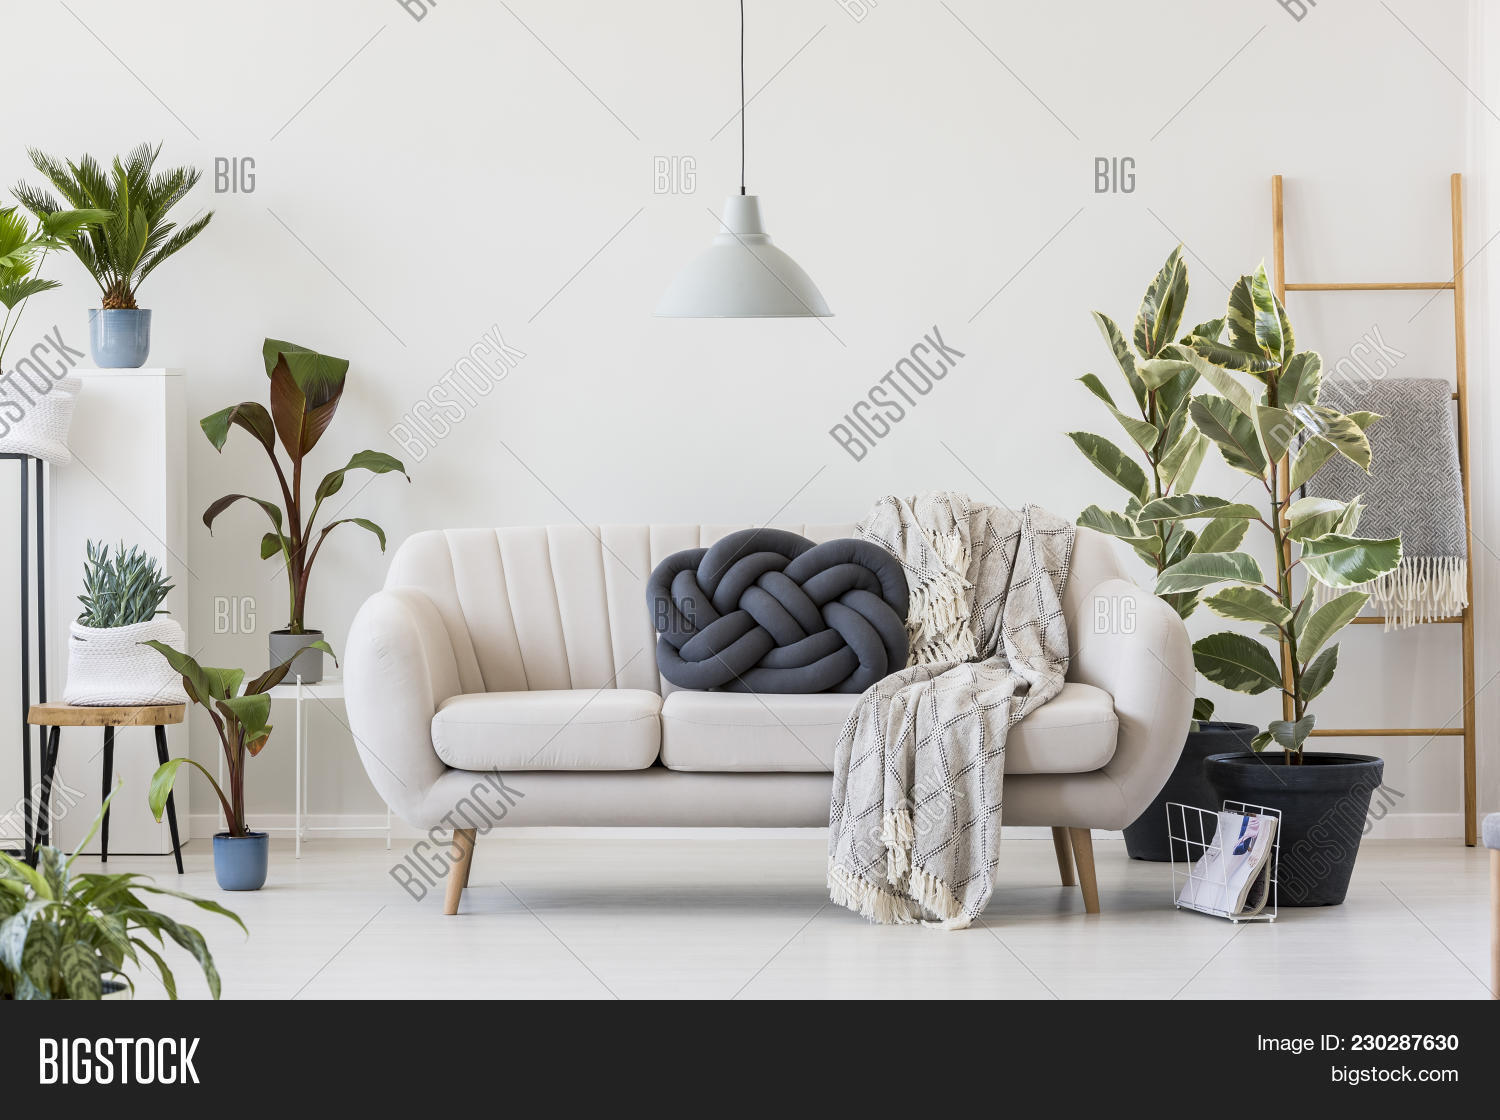 Knot Pillow On White Image Photo Free Trial Bigstock